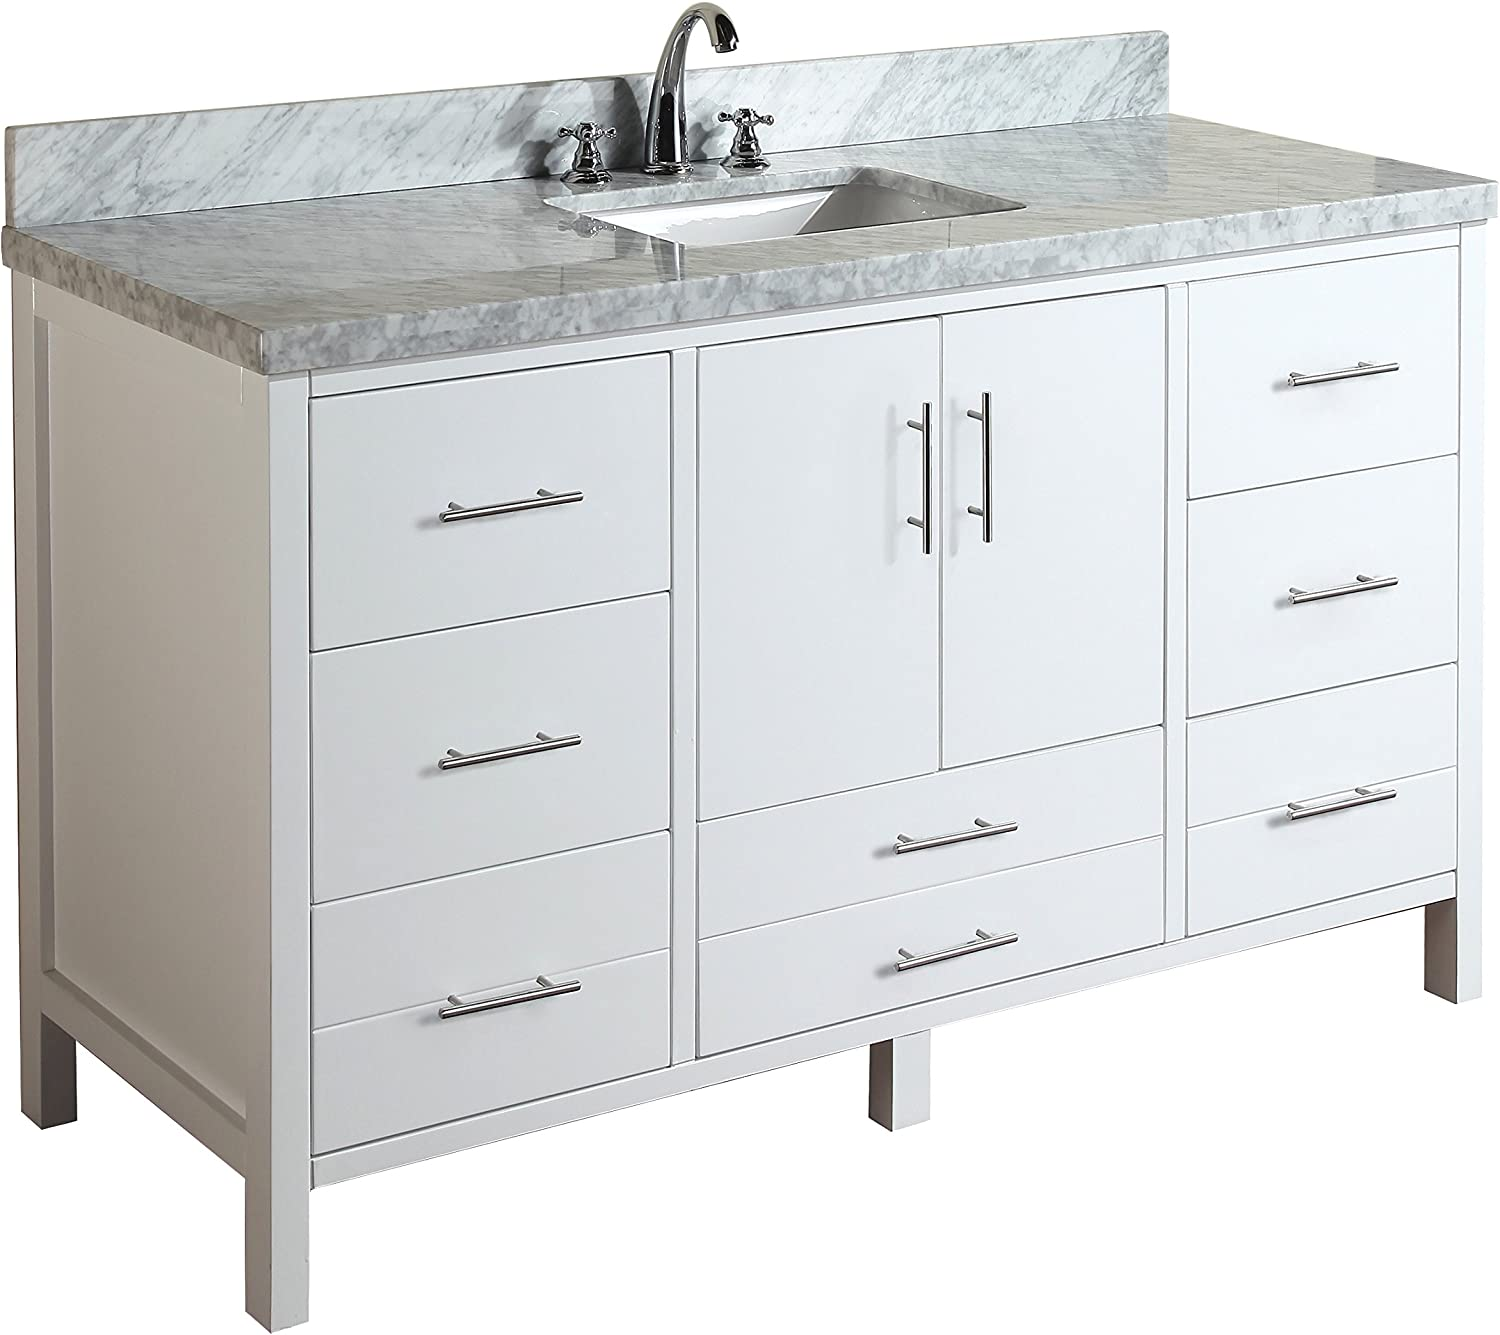 Amazon Com California 60 Inch Single Bathroom Vanity Carrara White Includes White Cabinet With Authentic Italian Carrara Marble Countertop And White Ceramic Sink Everything Else